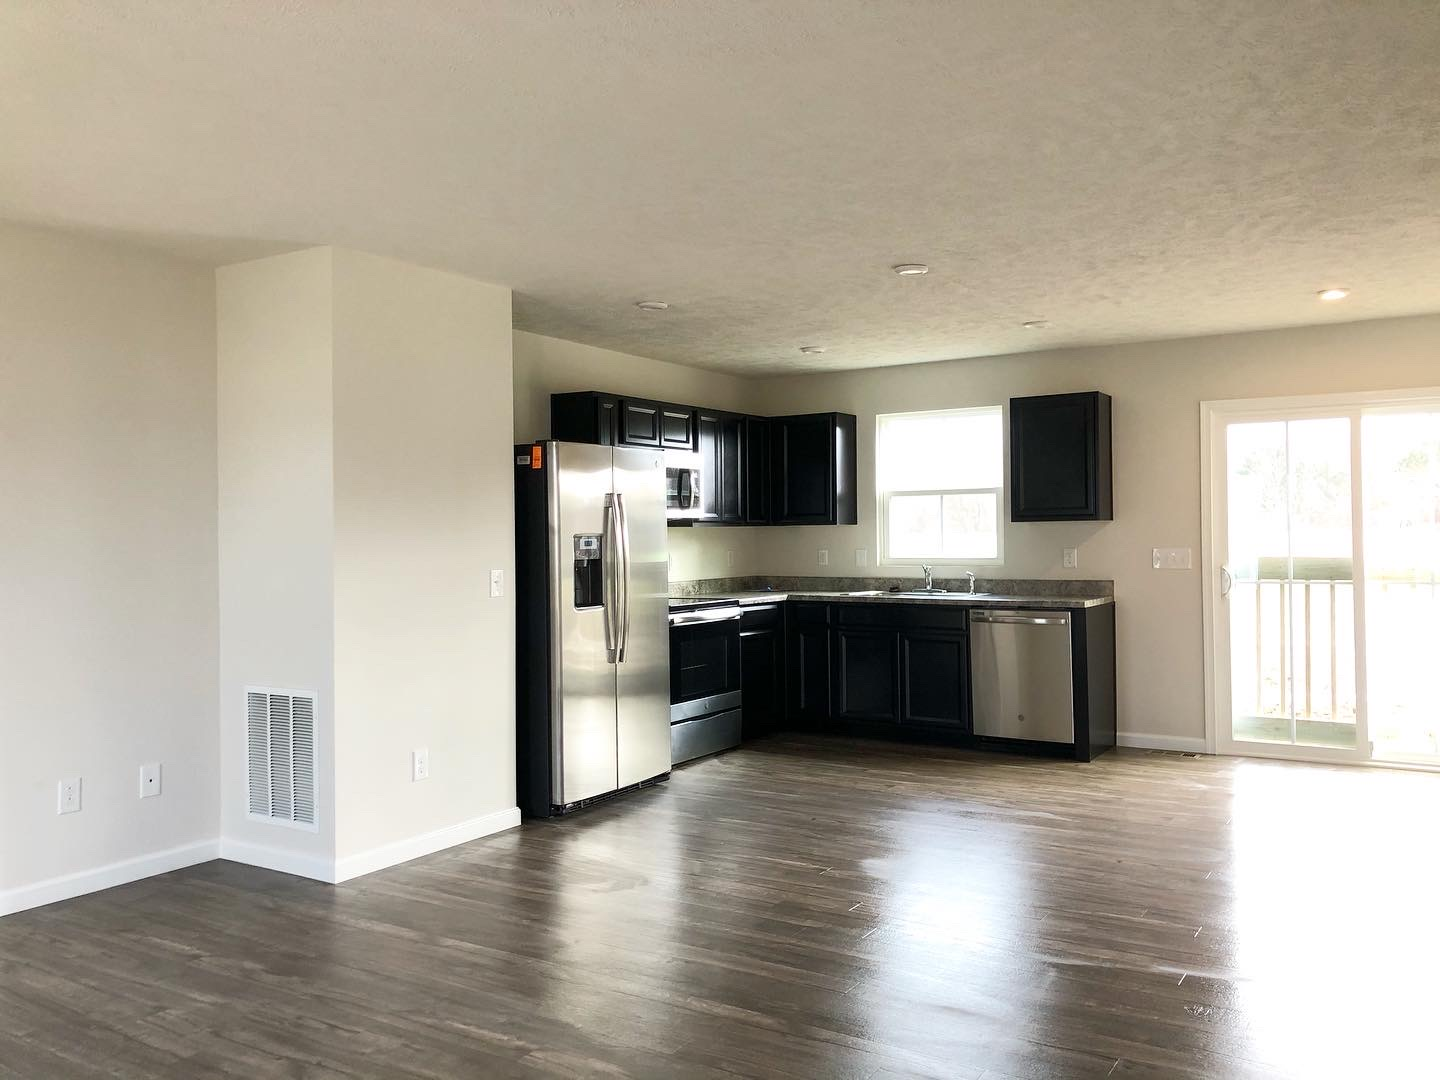 Residential & Commercial Cleaning Services in Lakewood